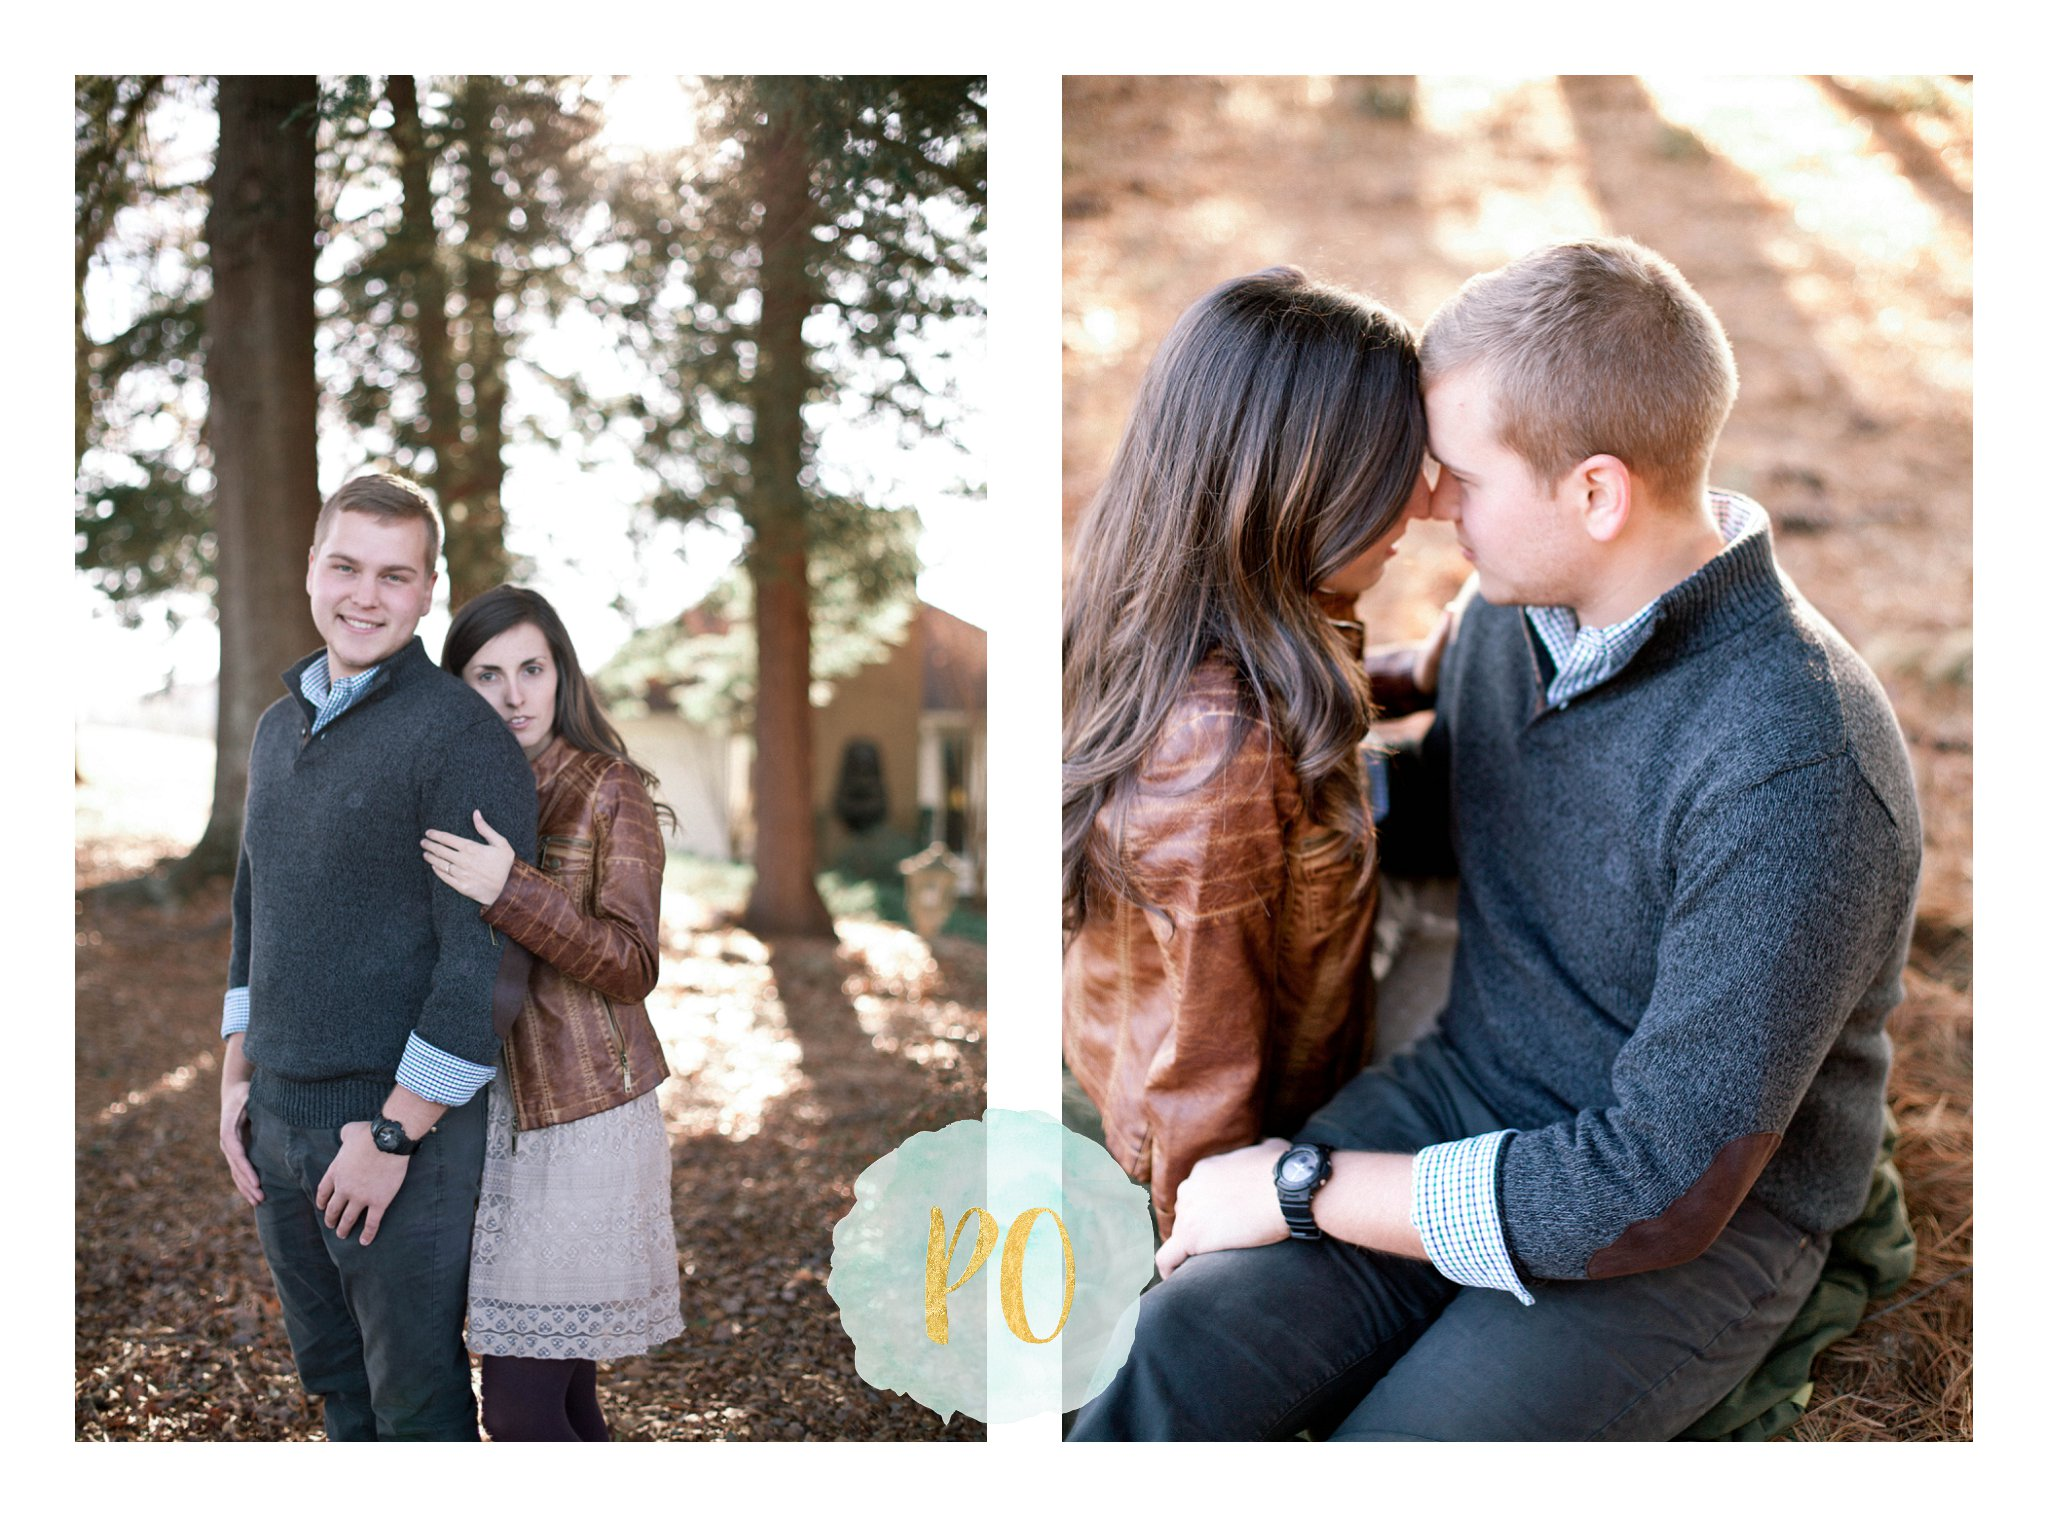 lindsey plantation, engagement, outdoor, rustic, fall, barn, field, sc wedding photographer, poured out photography, august wedding,